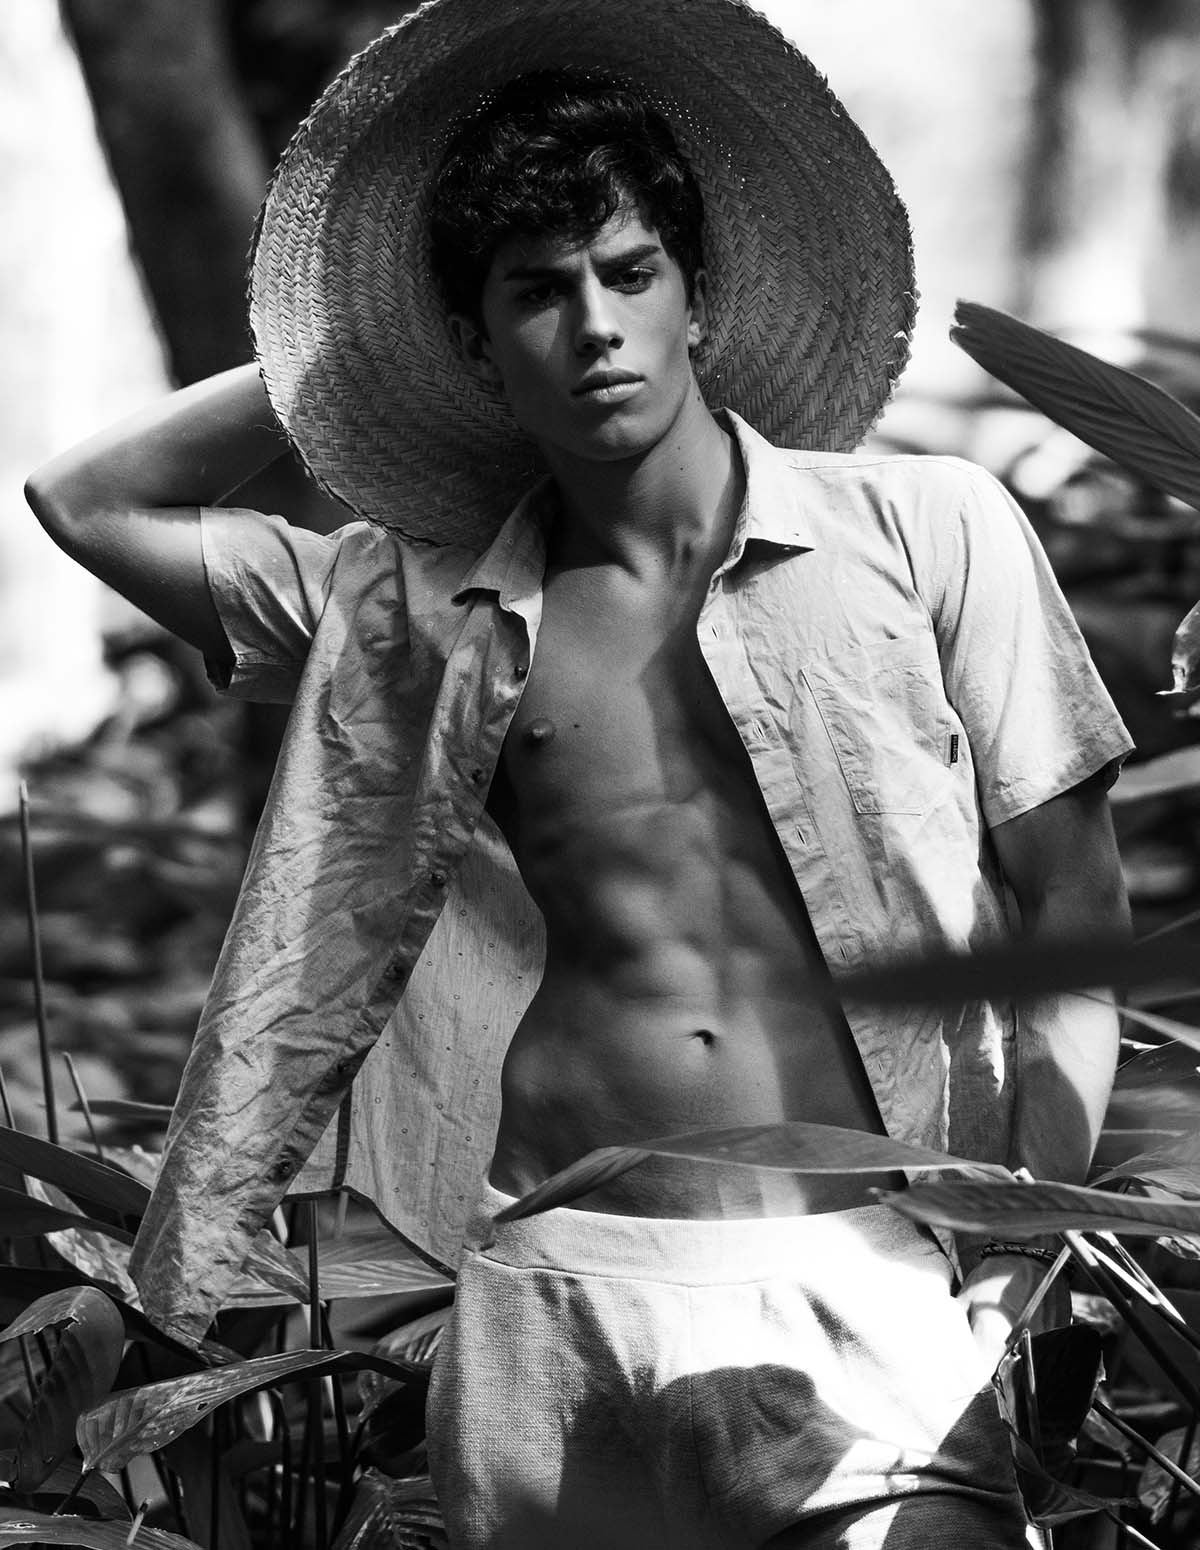 Luan Argollo by Carla Reichert for Brazilian Male Model